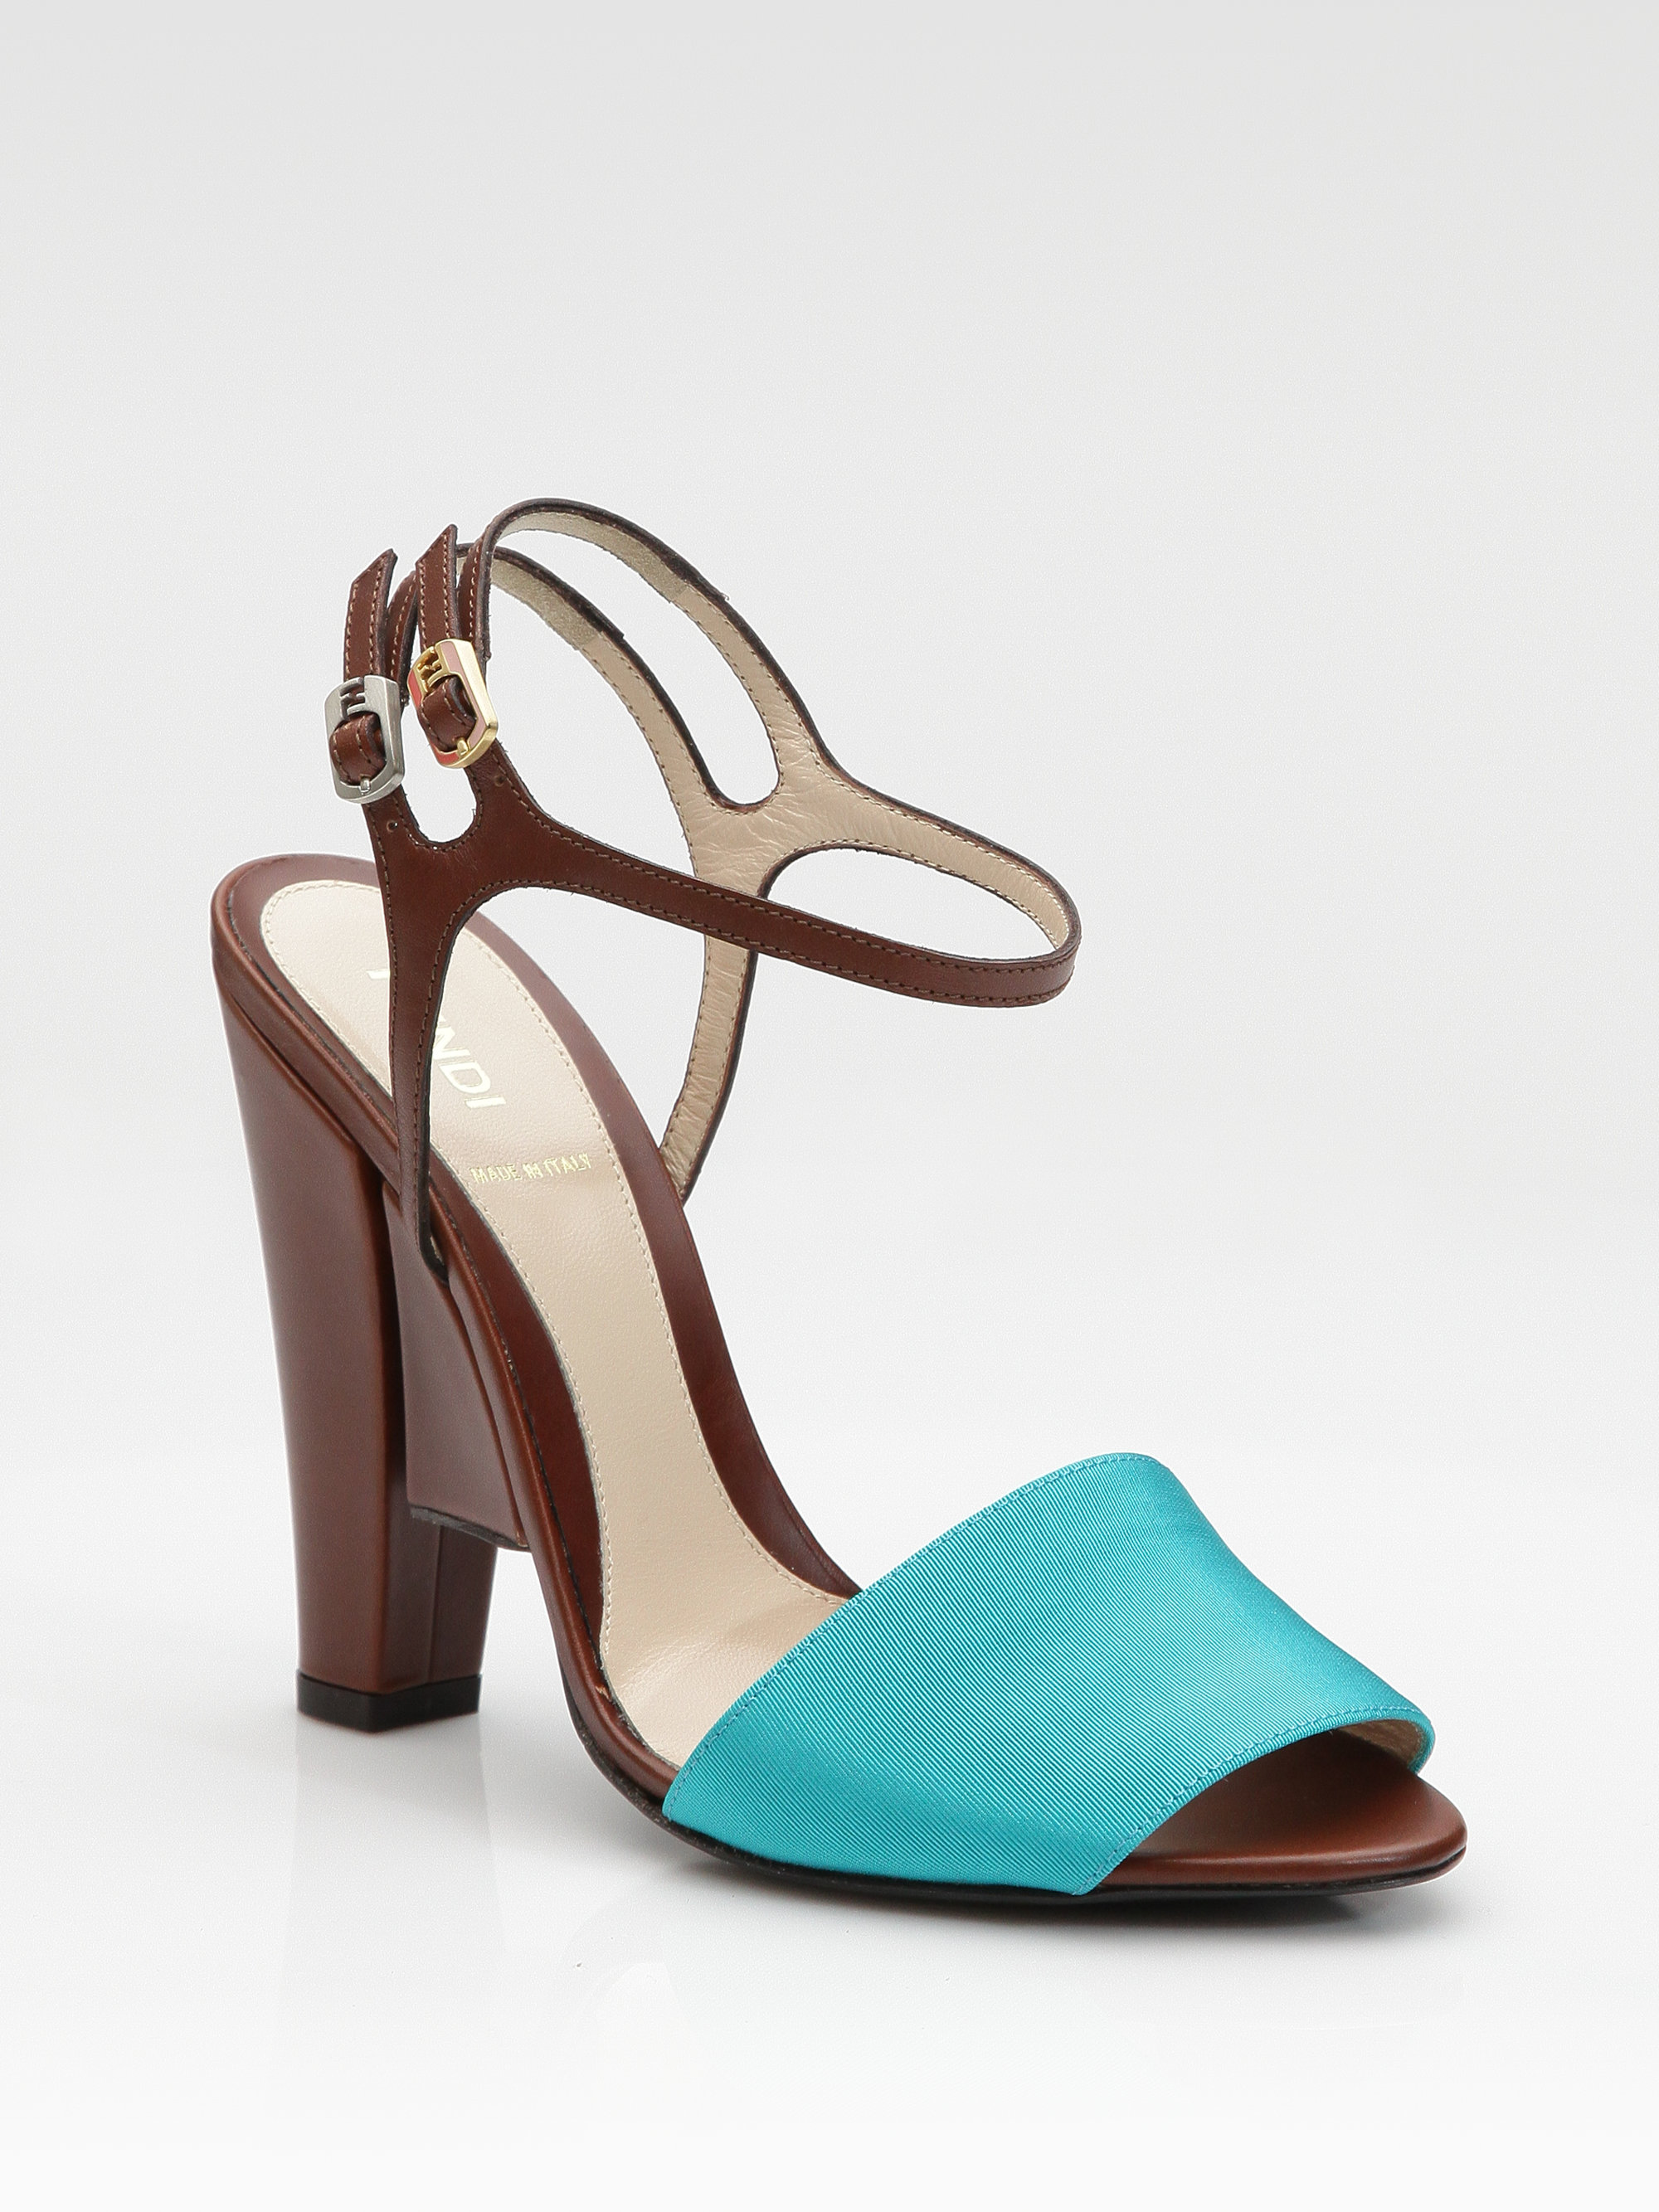 Fendi Color Block Sandals In Blue Turquoise Lyst